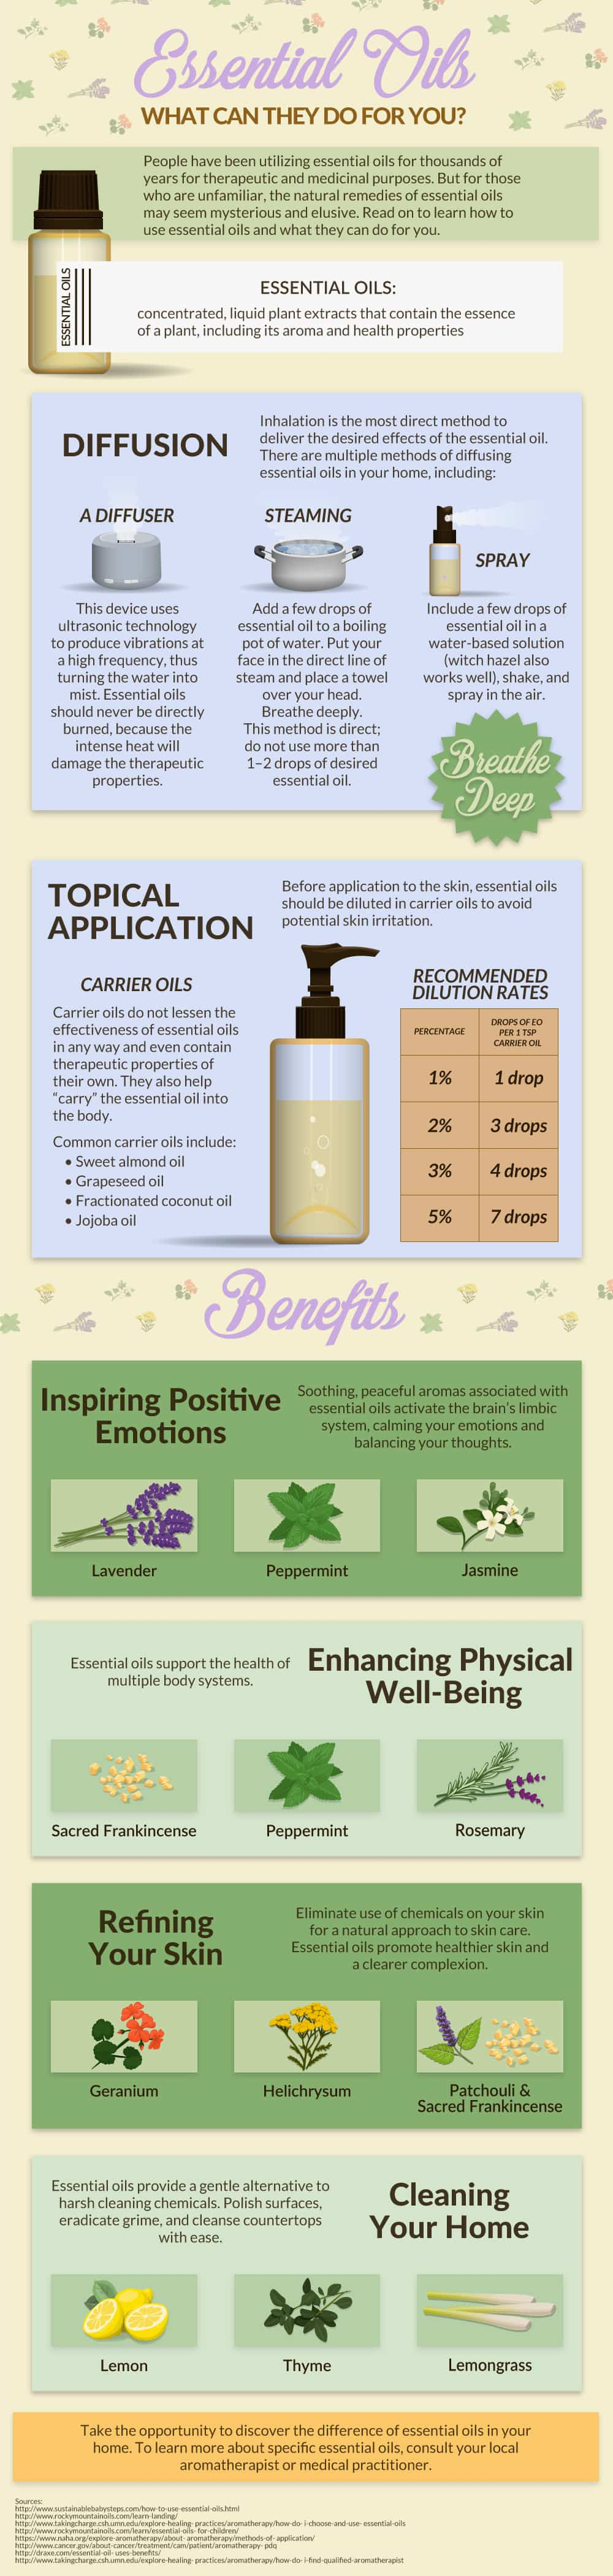 How to Use Essential Oils - Rocky Mountain Oils | www.joyinthehome.com